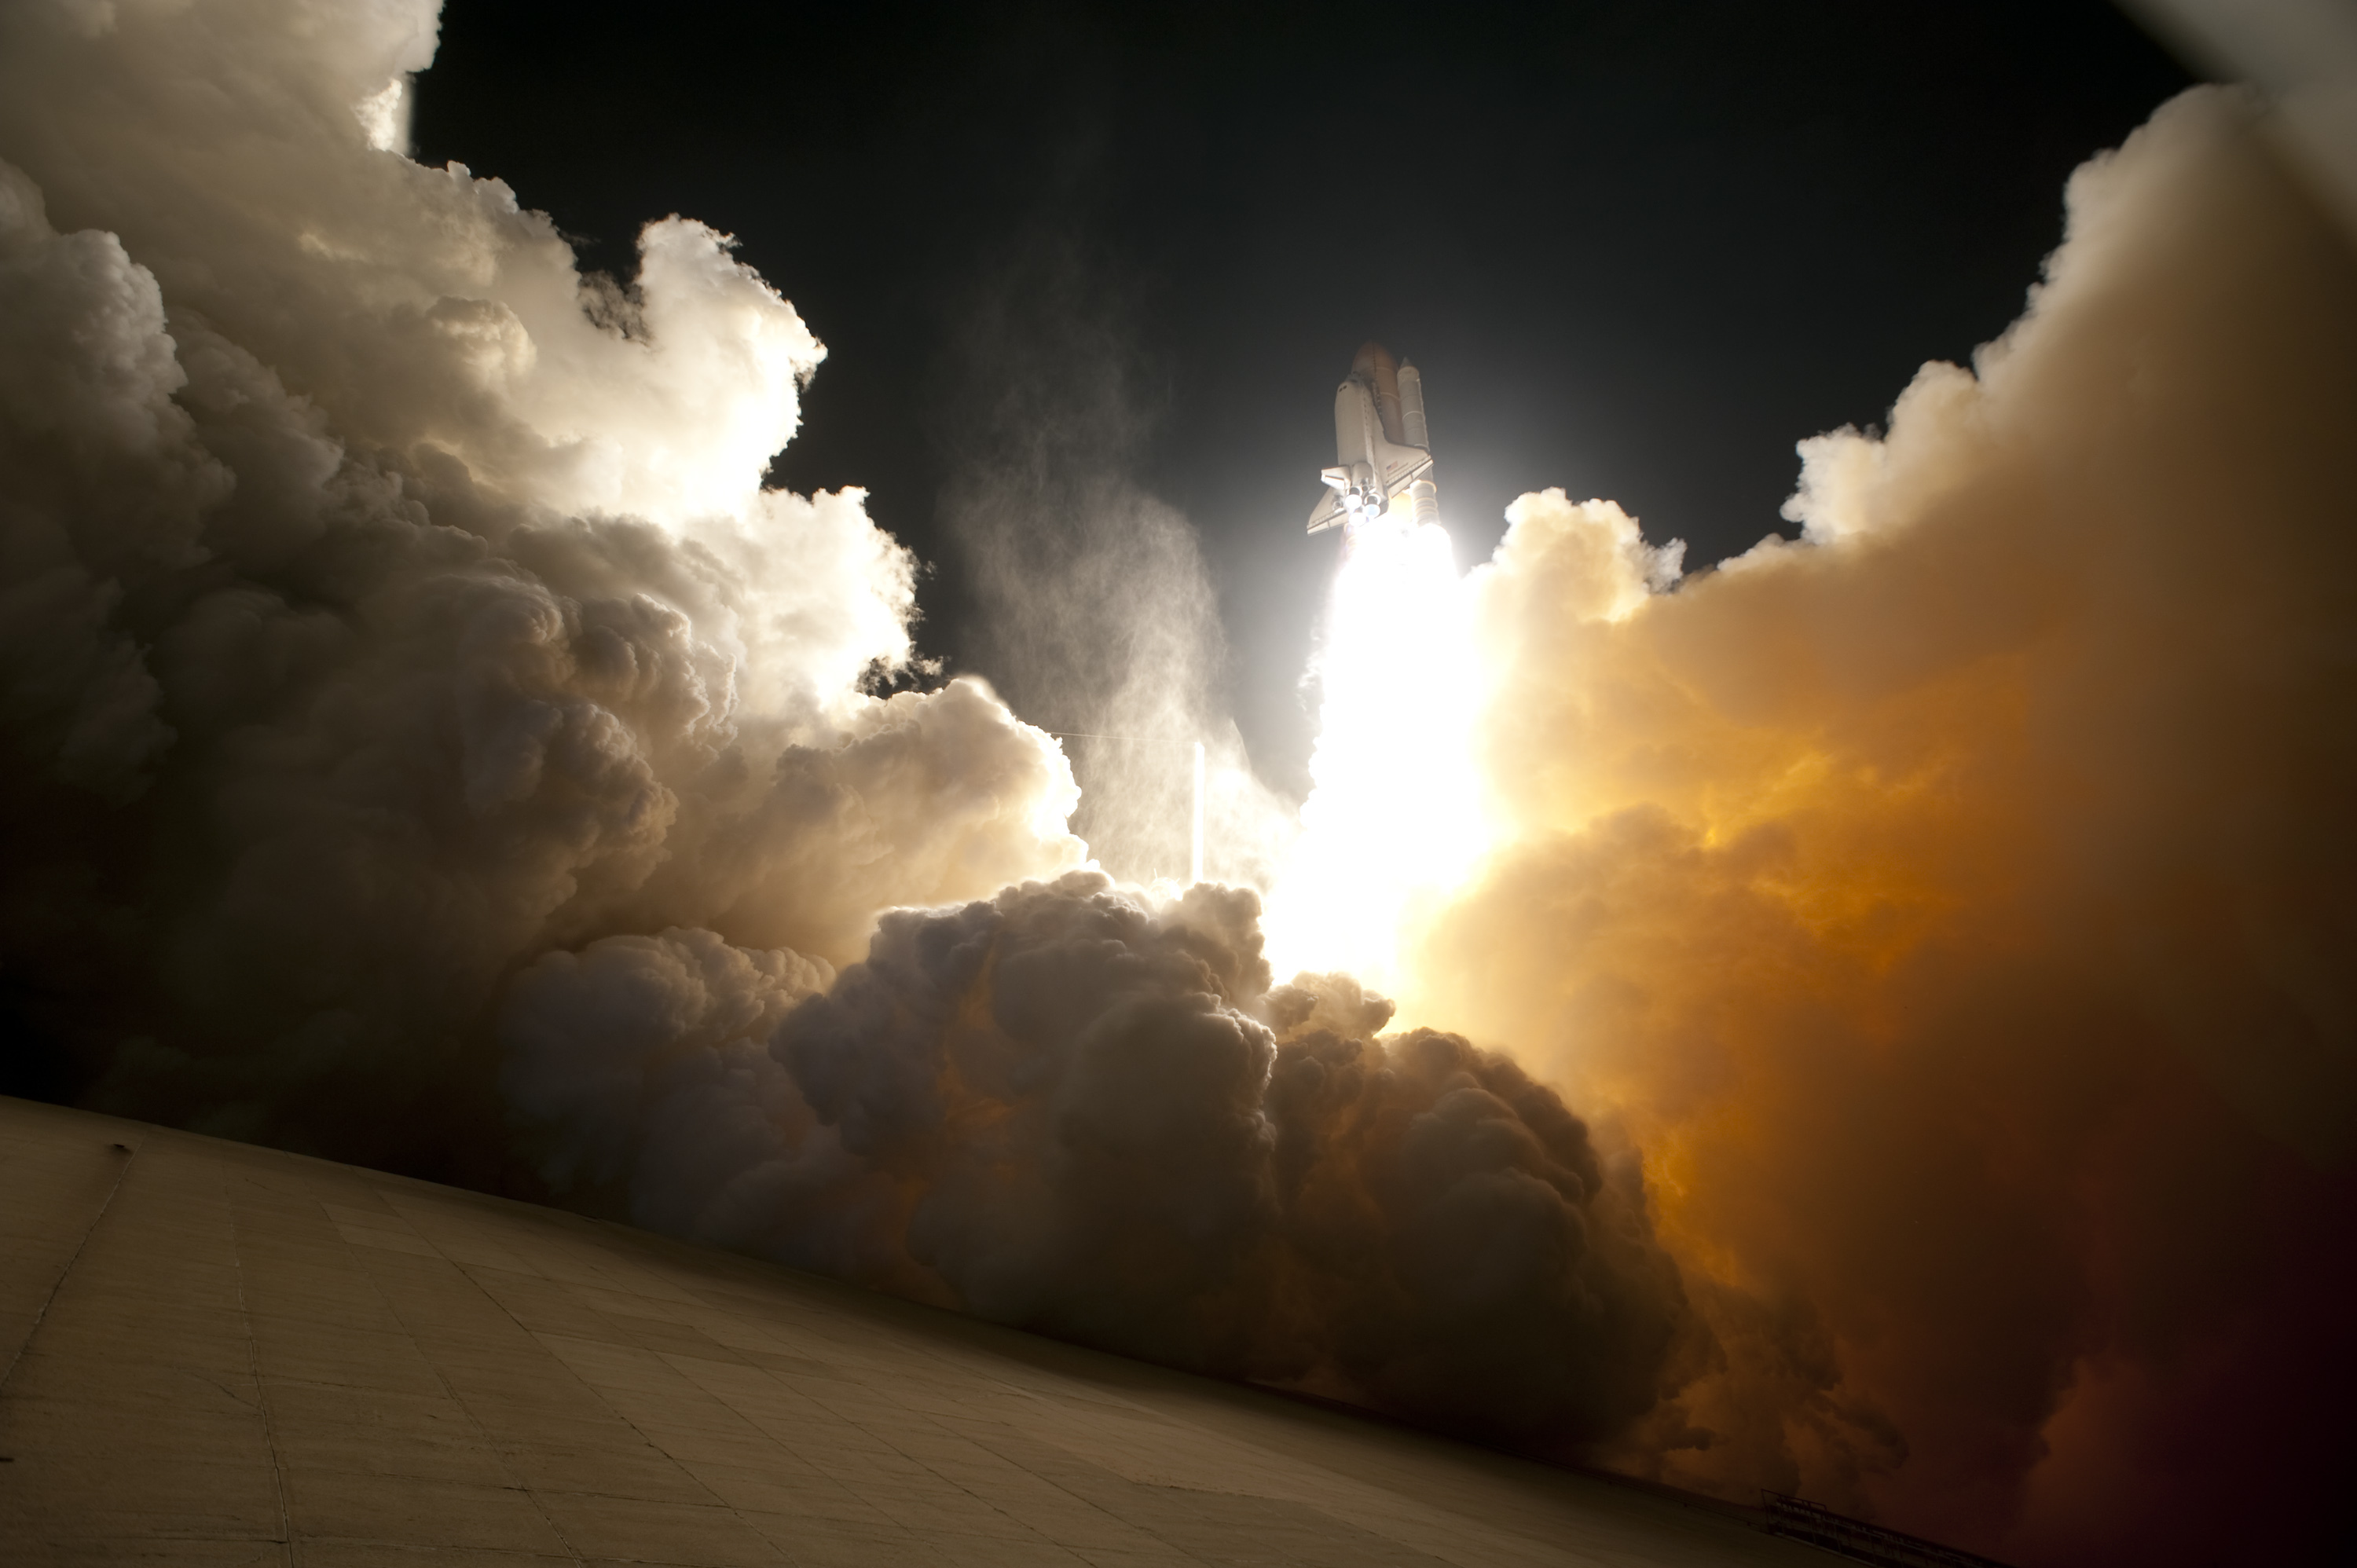 <em>Endeavour</em> lifts off from pad 39A for STS-130 in February 2010. This was the final night launch of the space shuttle program.